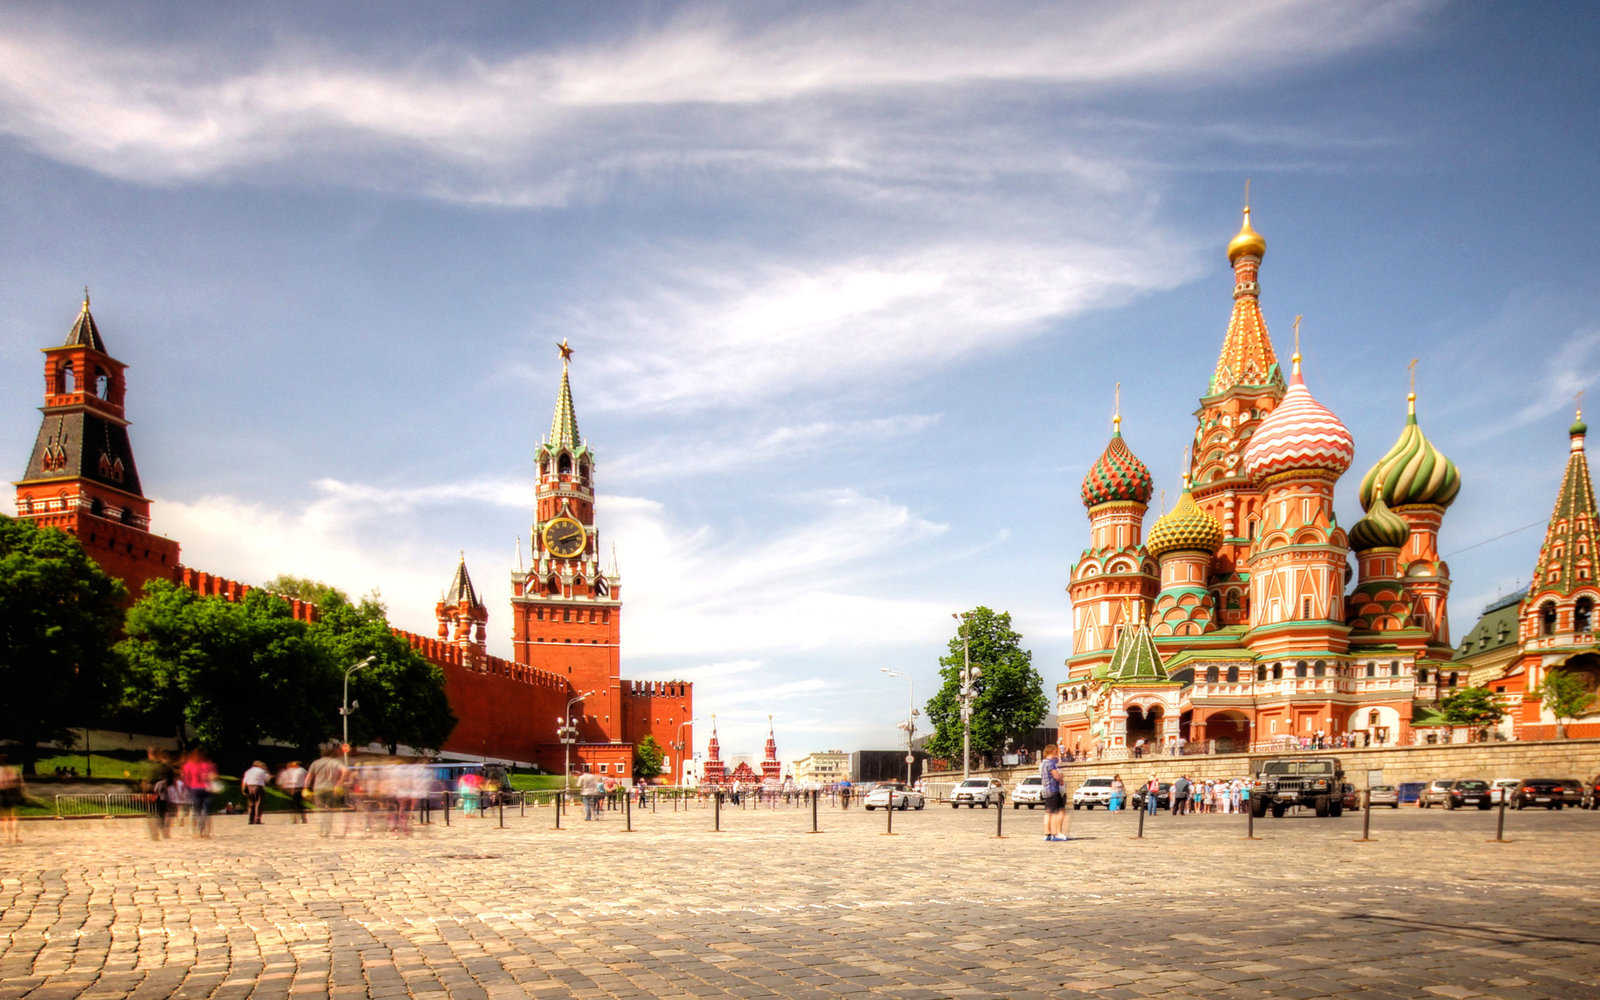 Moscow is getting inspired by Pokémon Go   Travel + Leisure